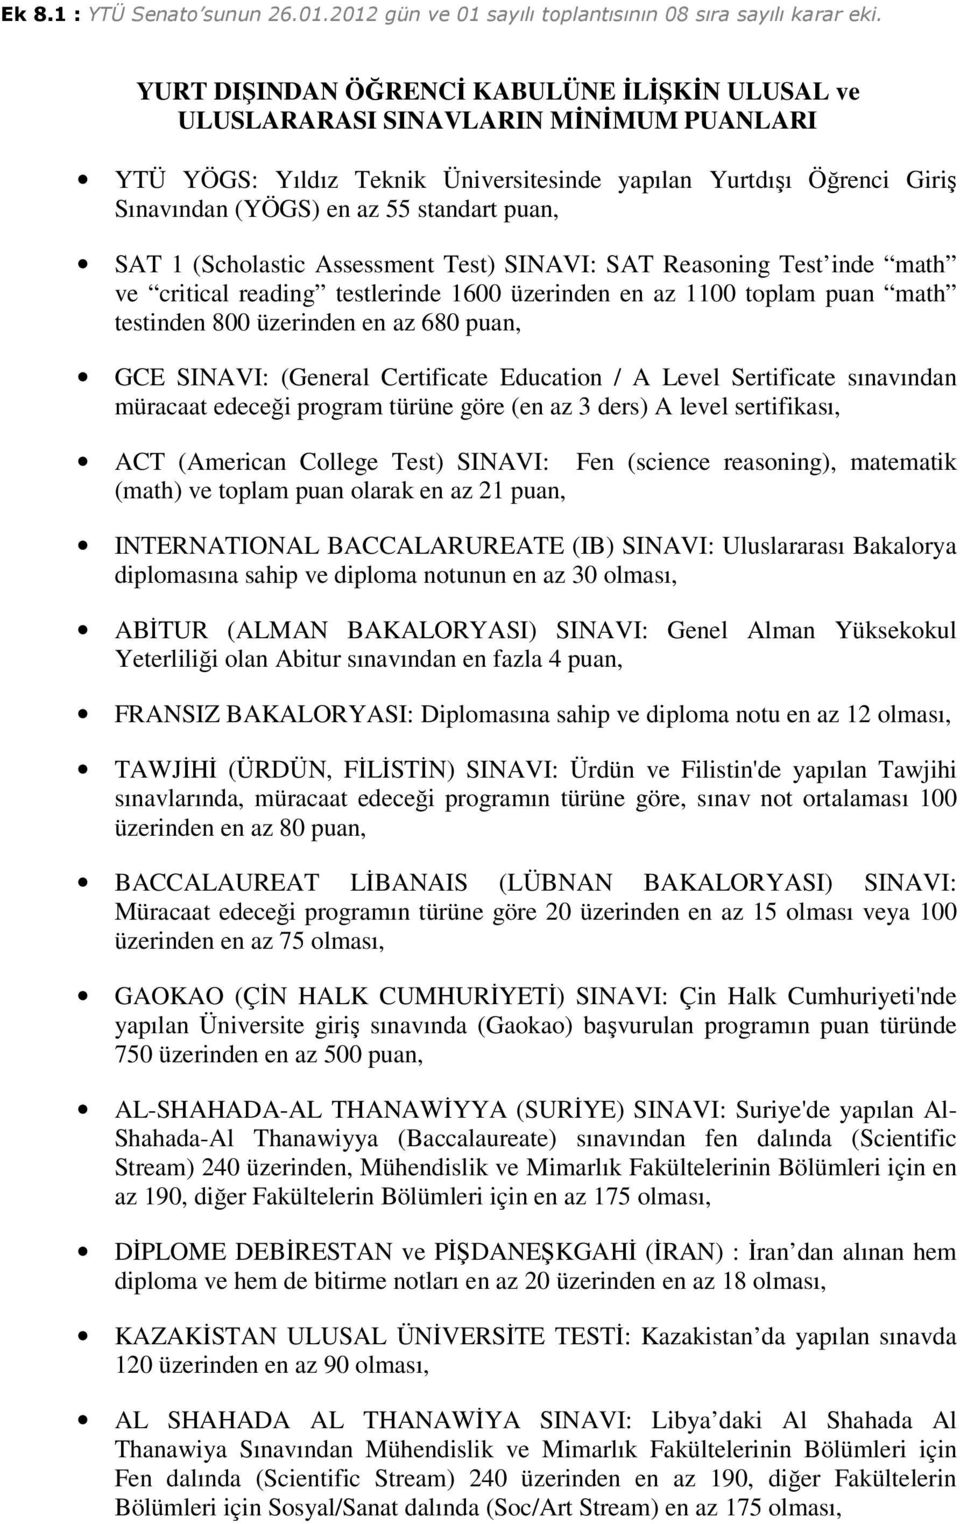 SINAVI: (General Certificate Education / A Level Sertificate sınavından müracaat edeceği program türüne göre (en az 3 ders) A level sertifikası, ACT (American College Test) SINAVI: (math) ve toplam